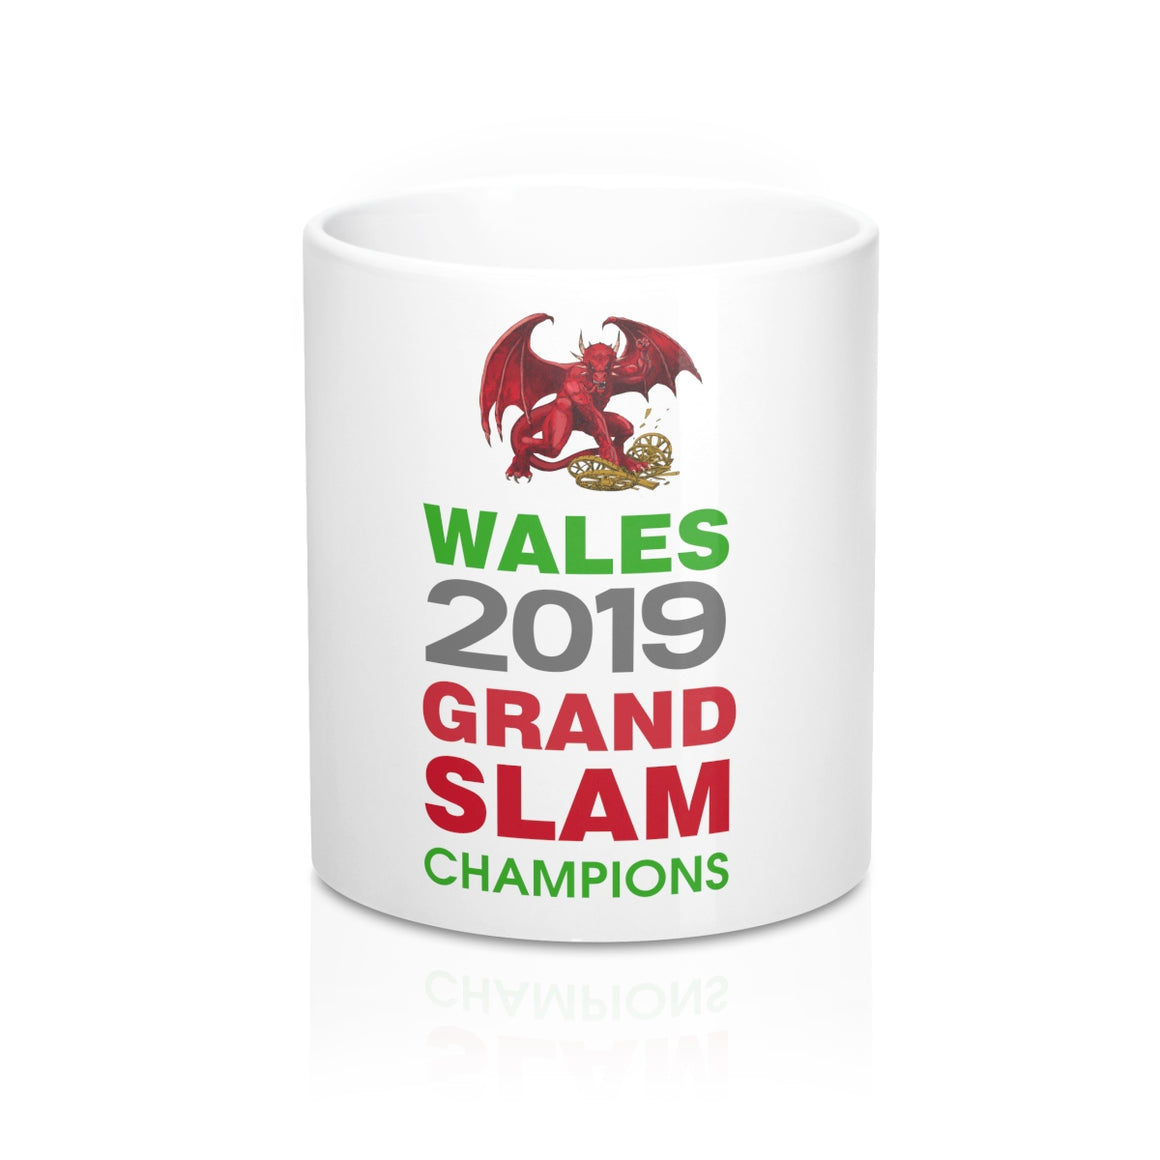 Wales 2019 Grand Slam Champions Mug 11oz White